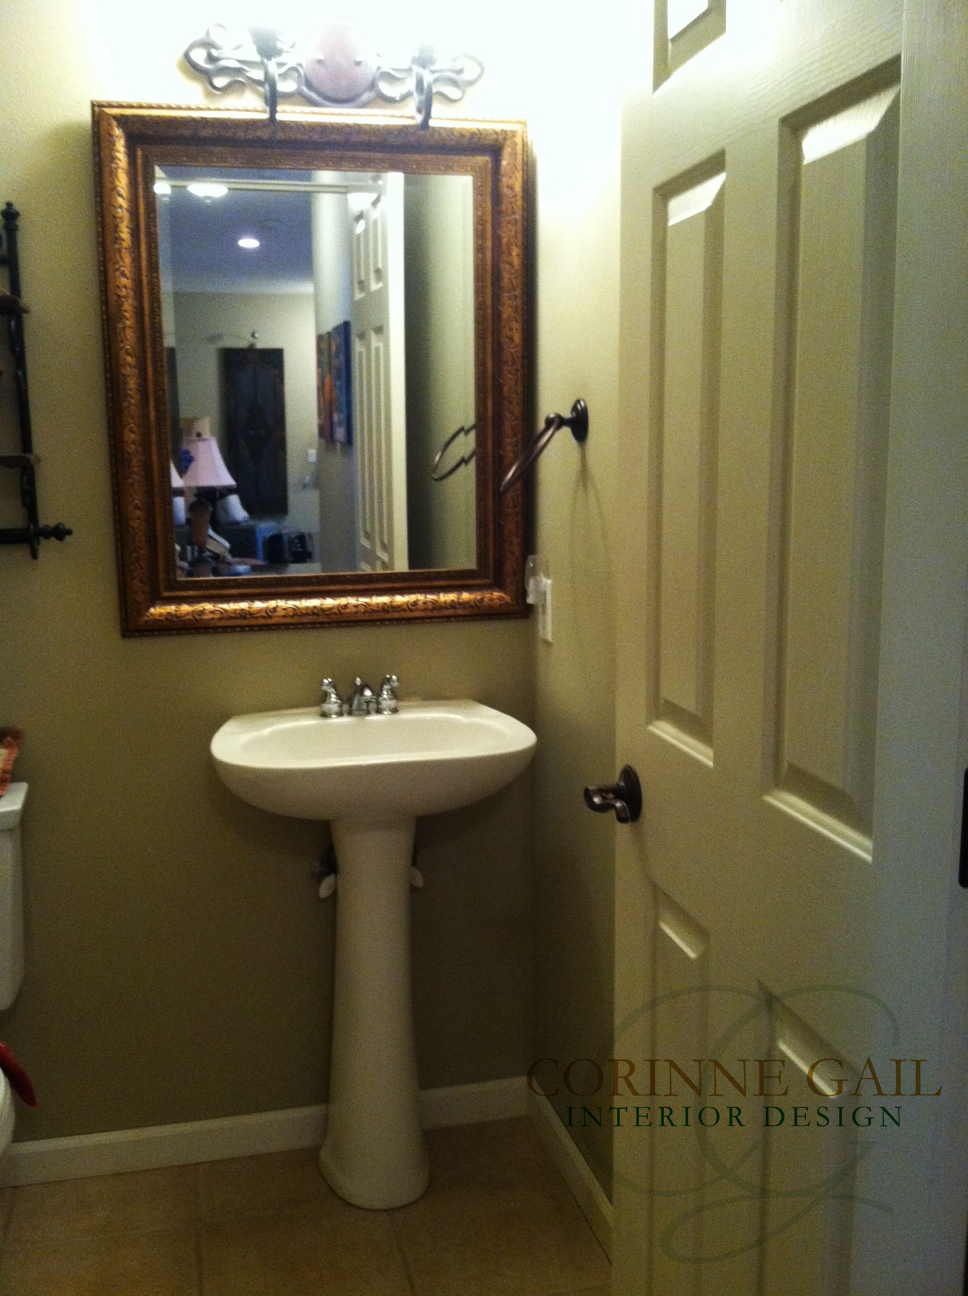 Bathrooms quick bathroom makeovers you can do corinne for Fast bathroom remodel